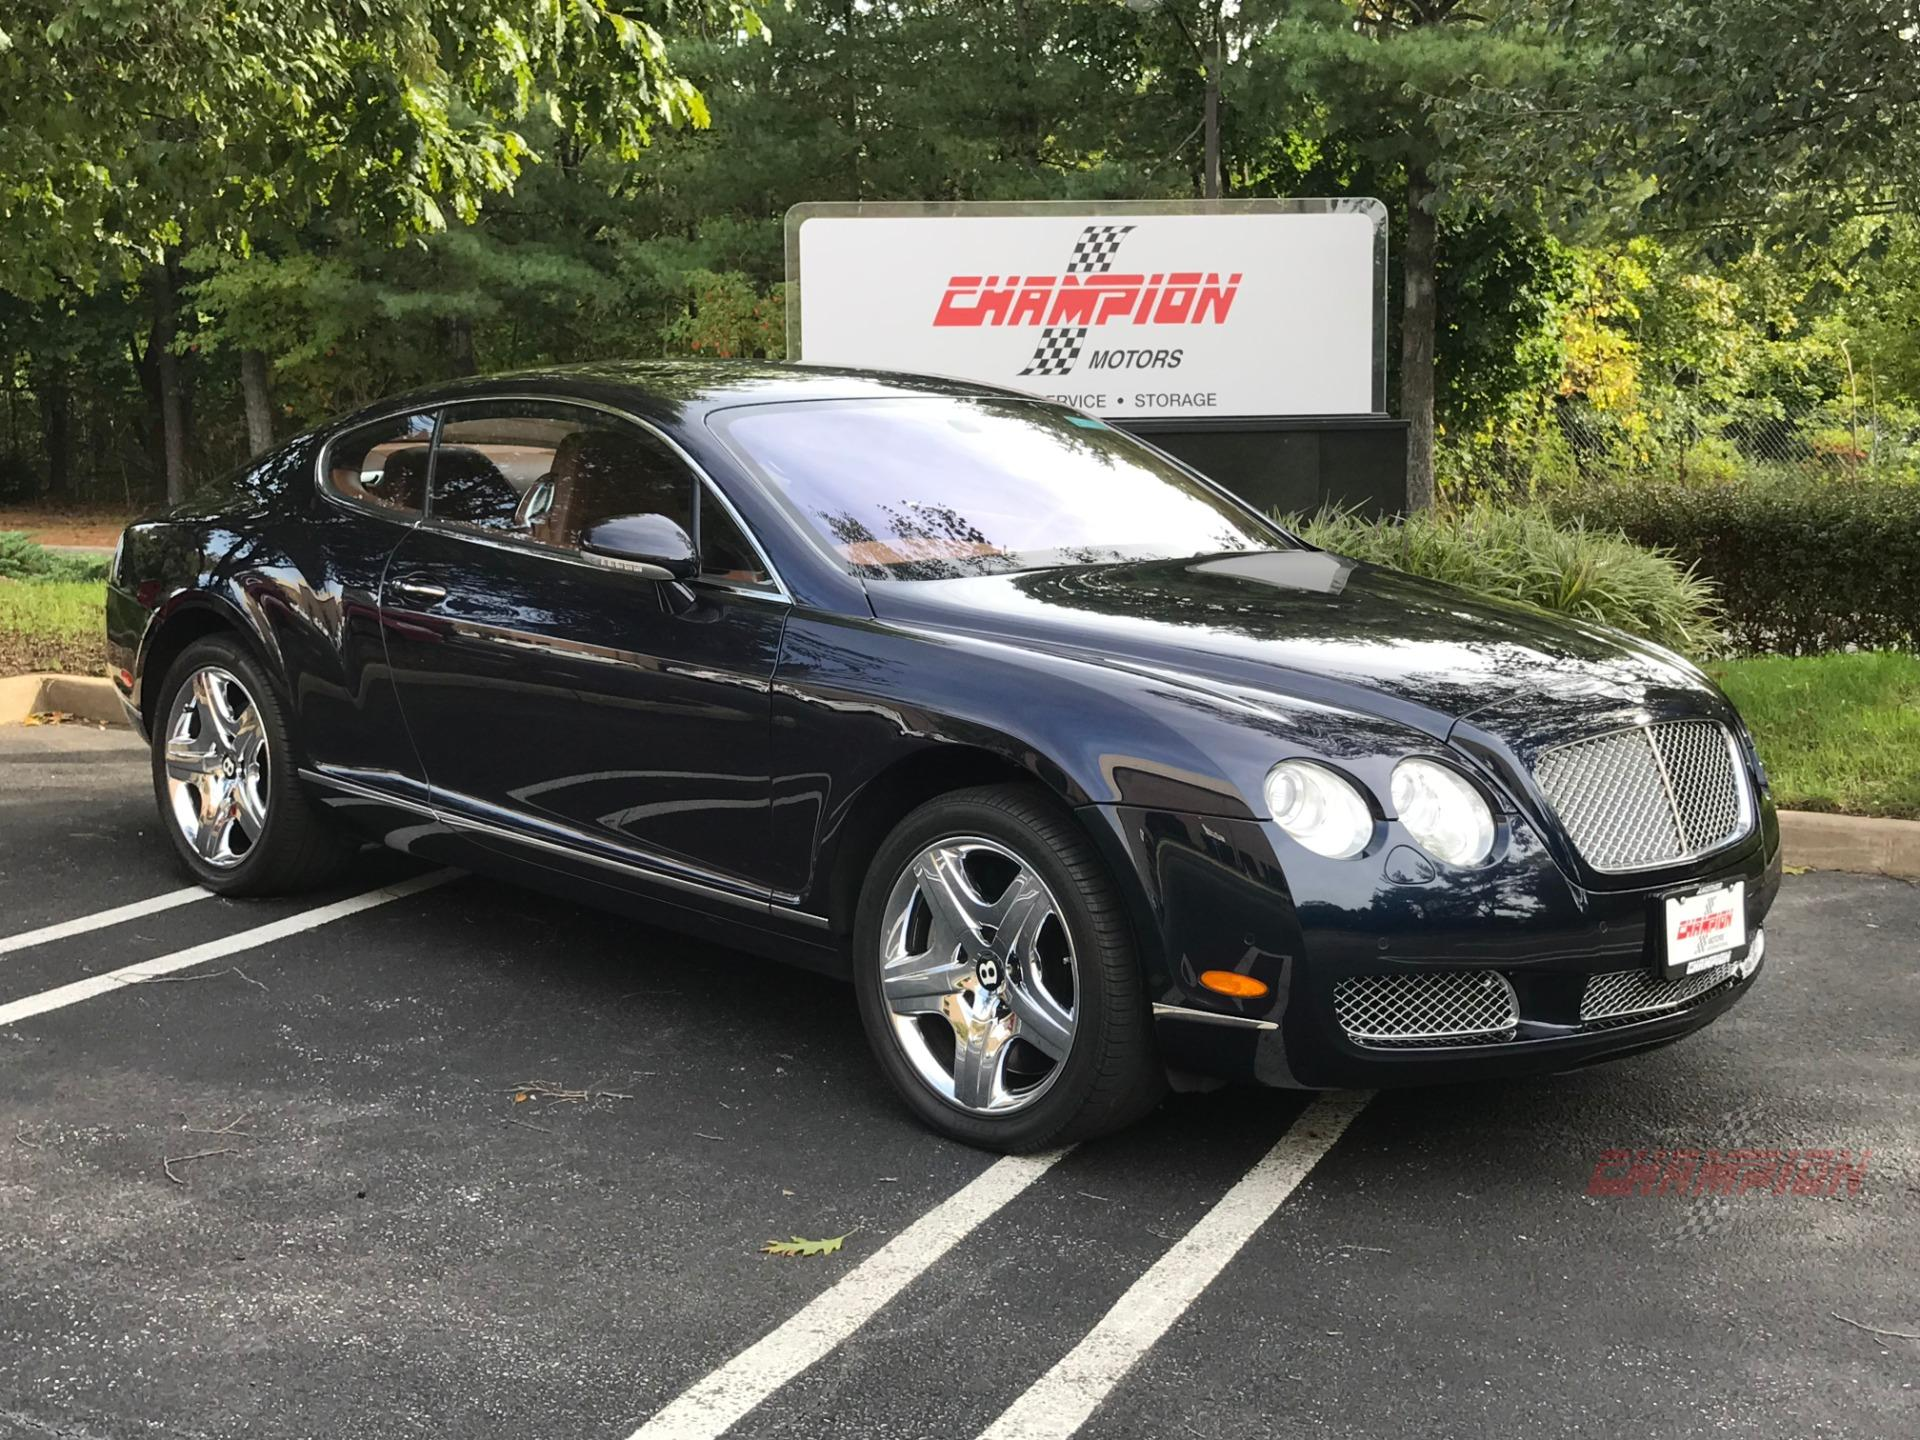 2005 Bentley Continental GT Champion Motors International l Exotic